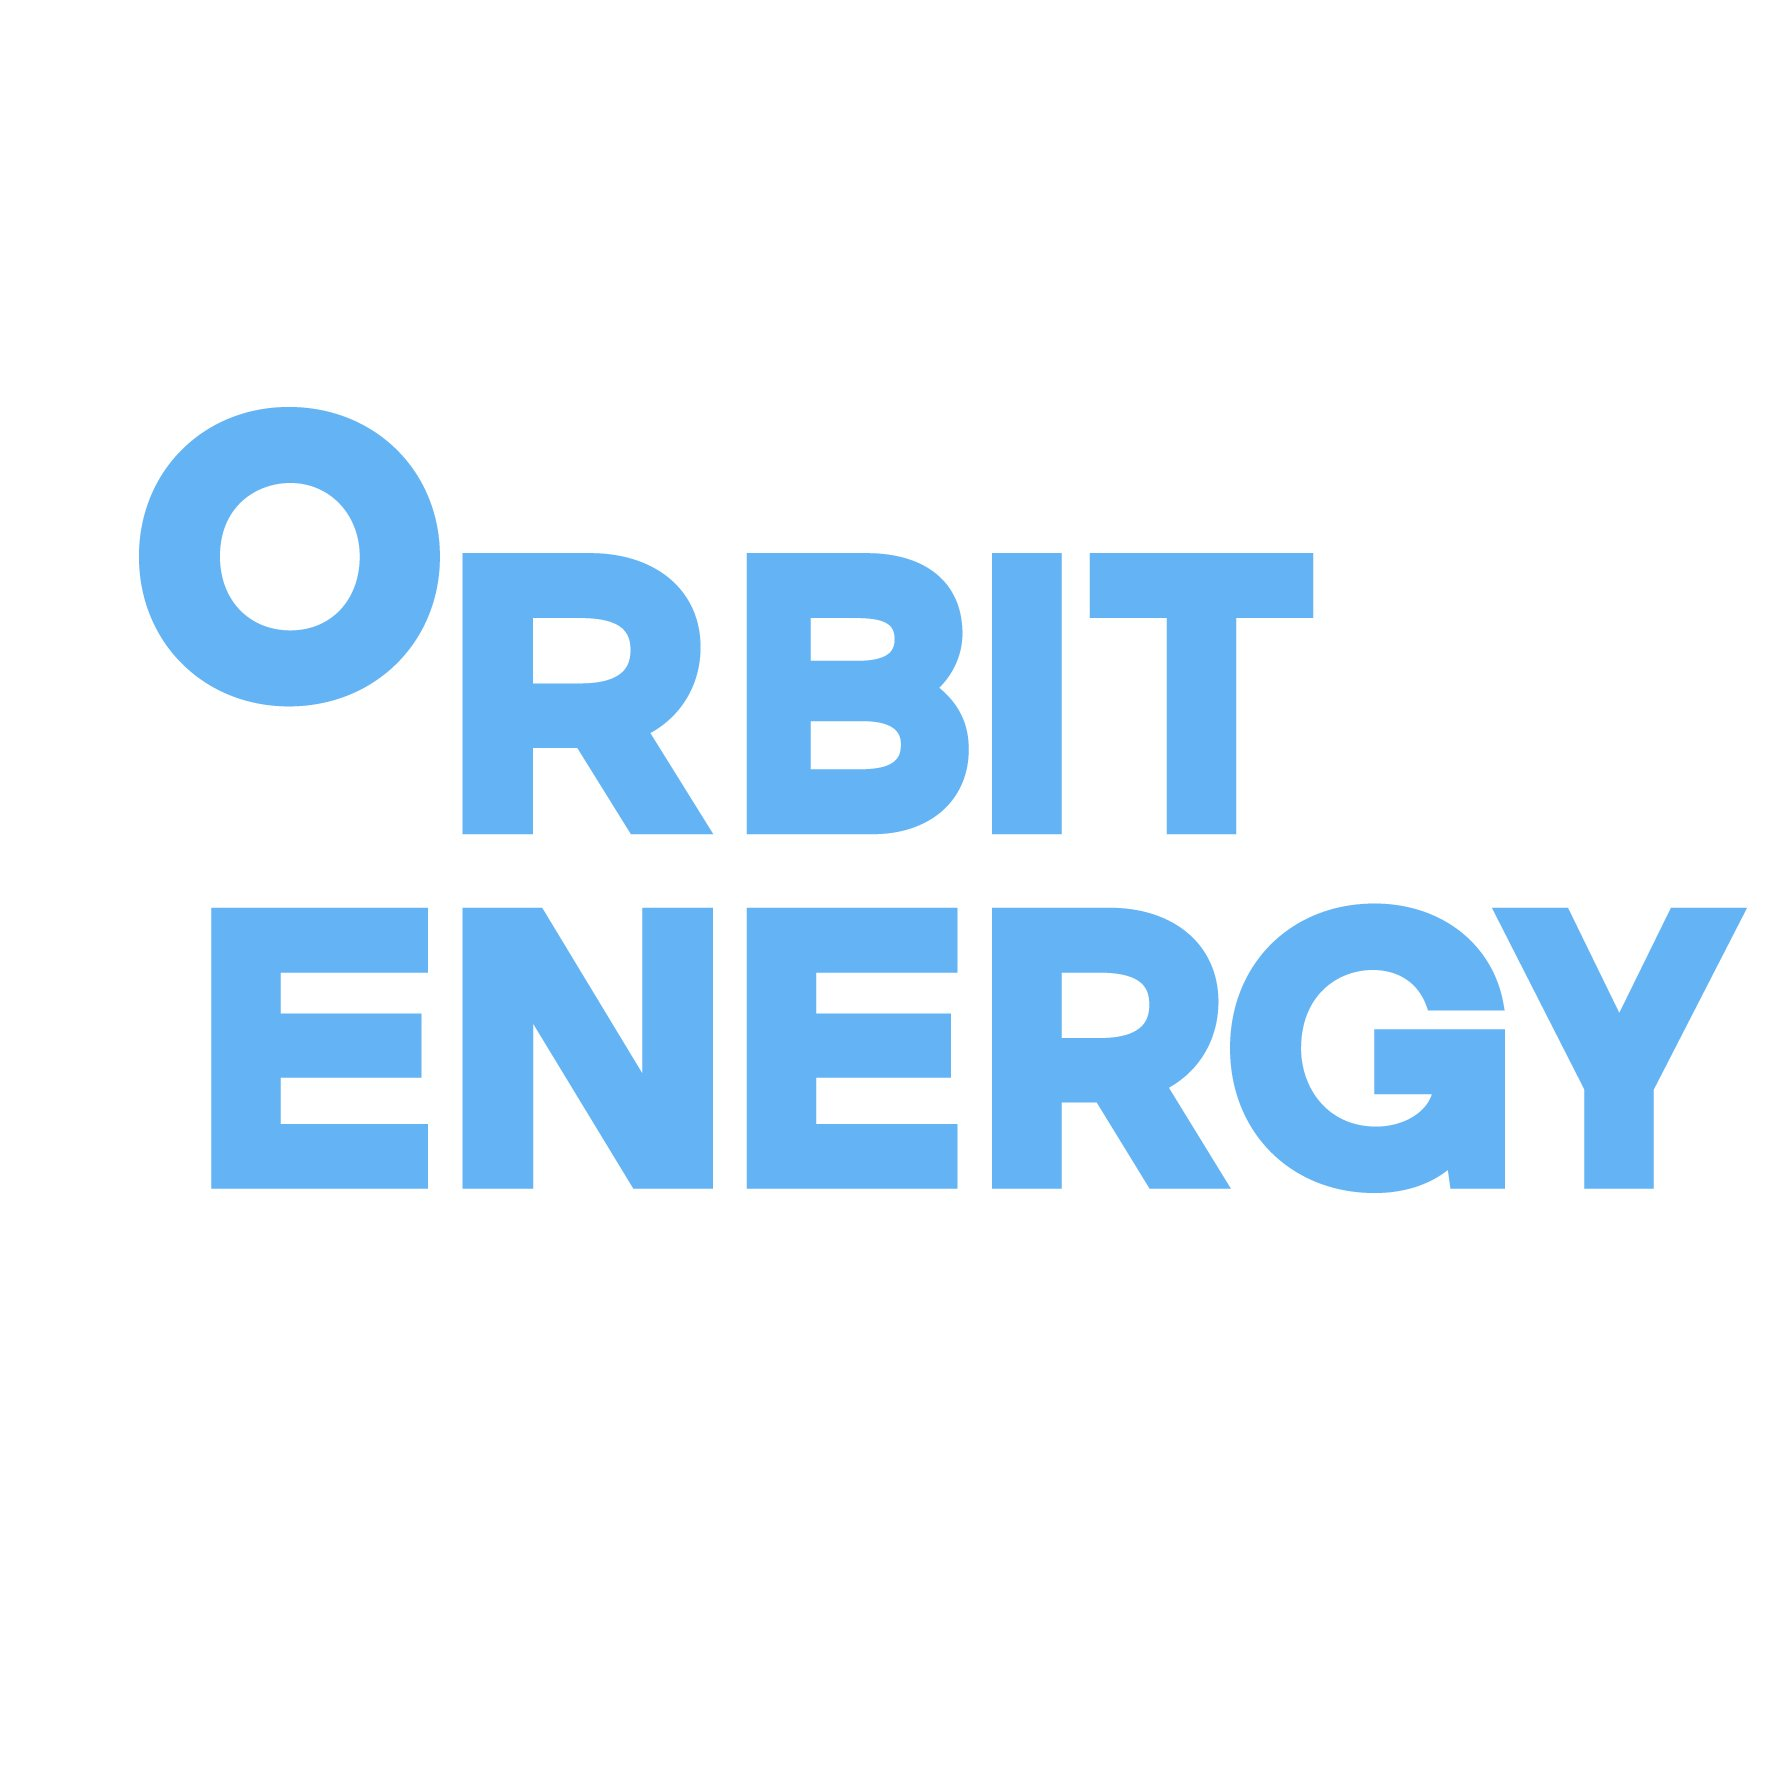 Orbit Energy logo